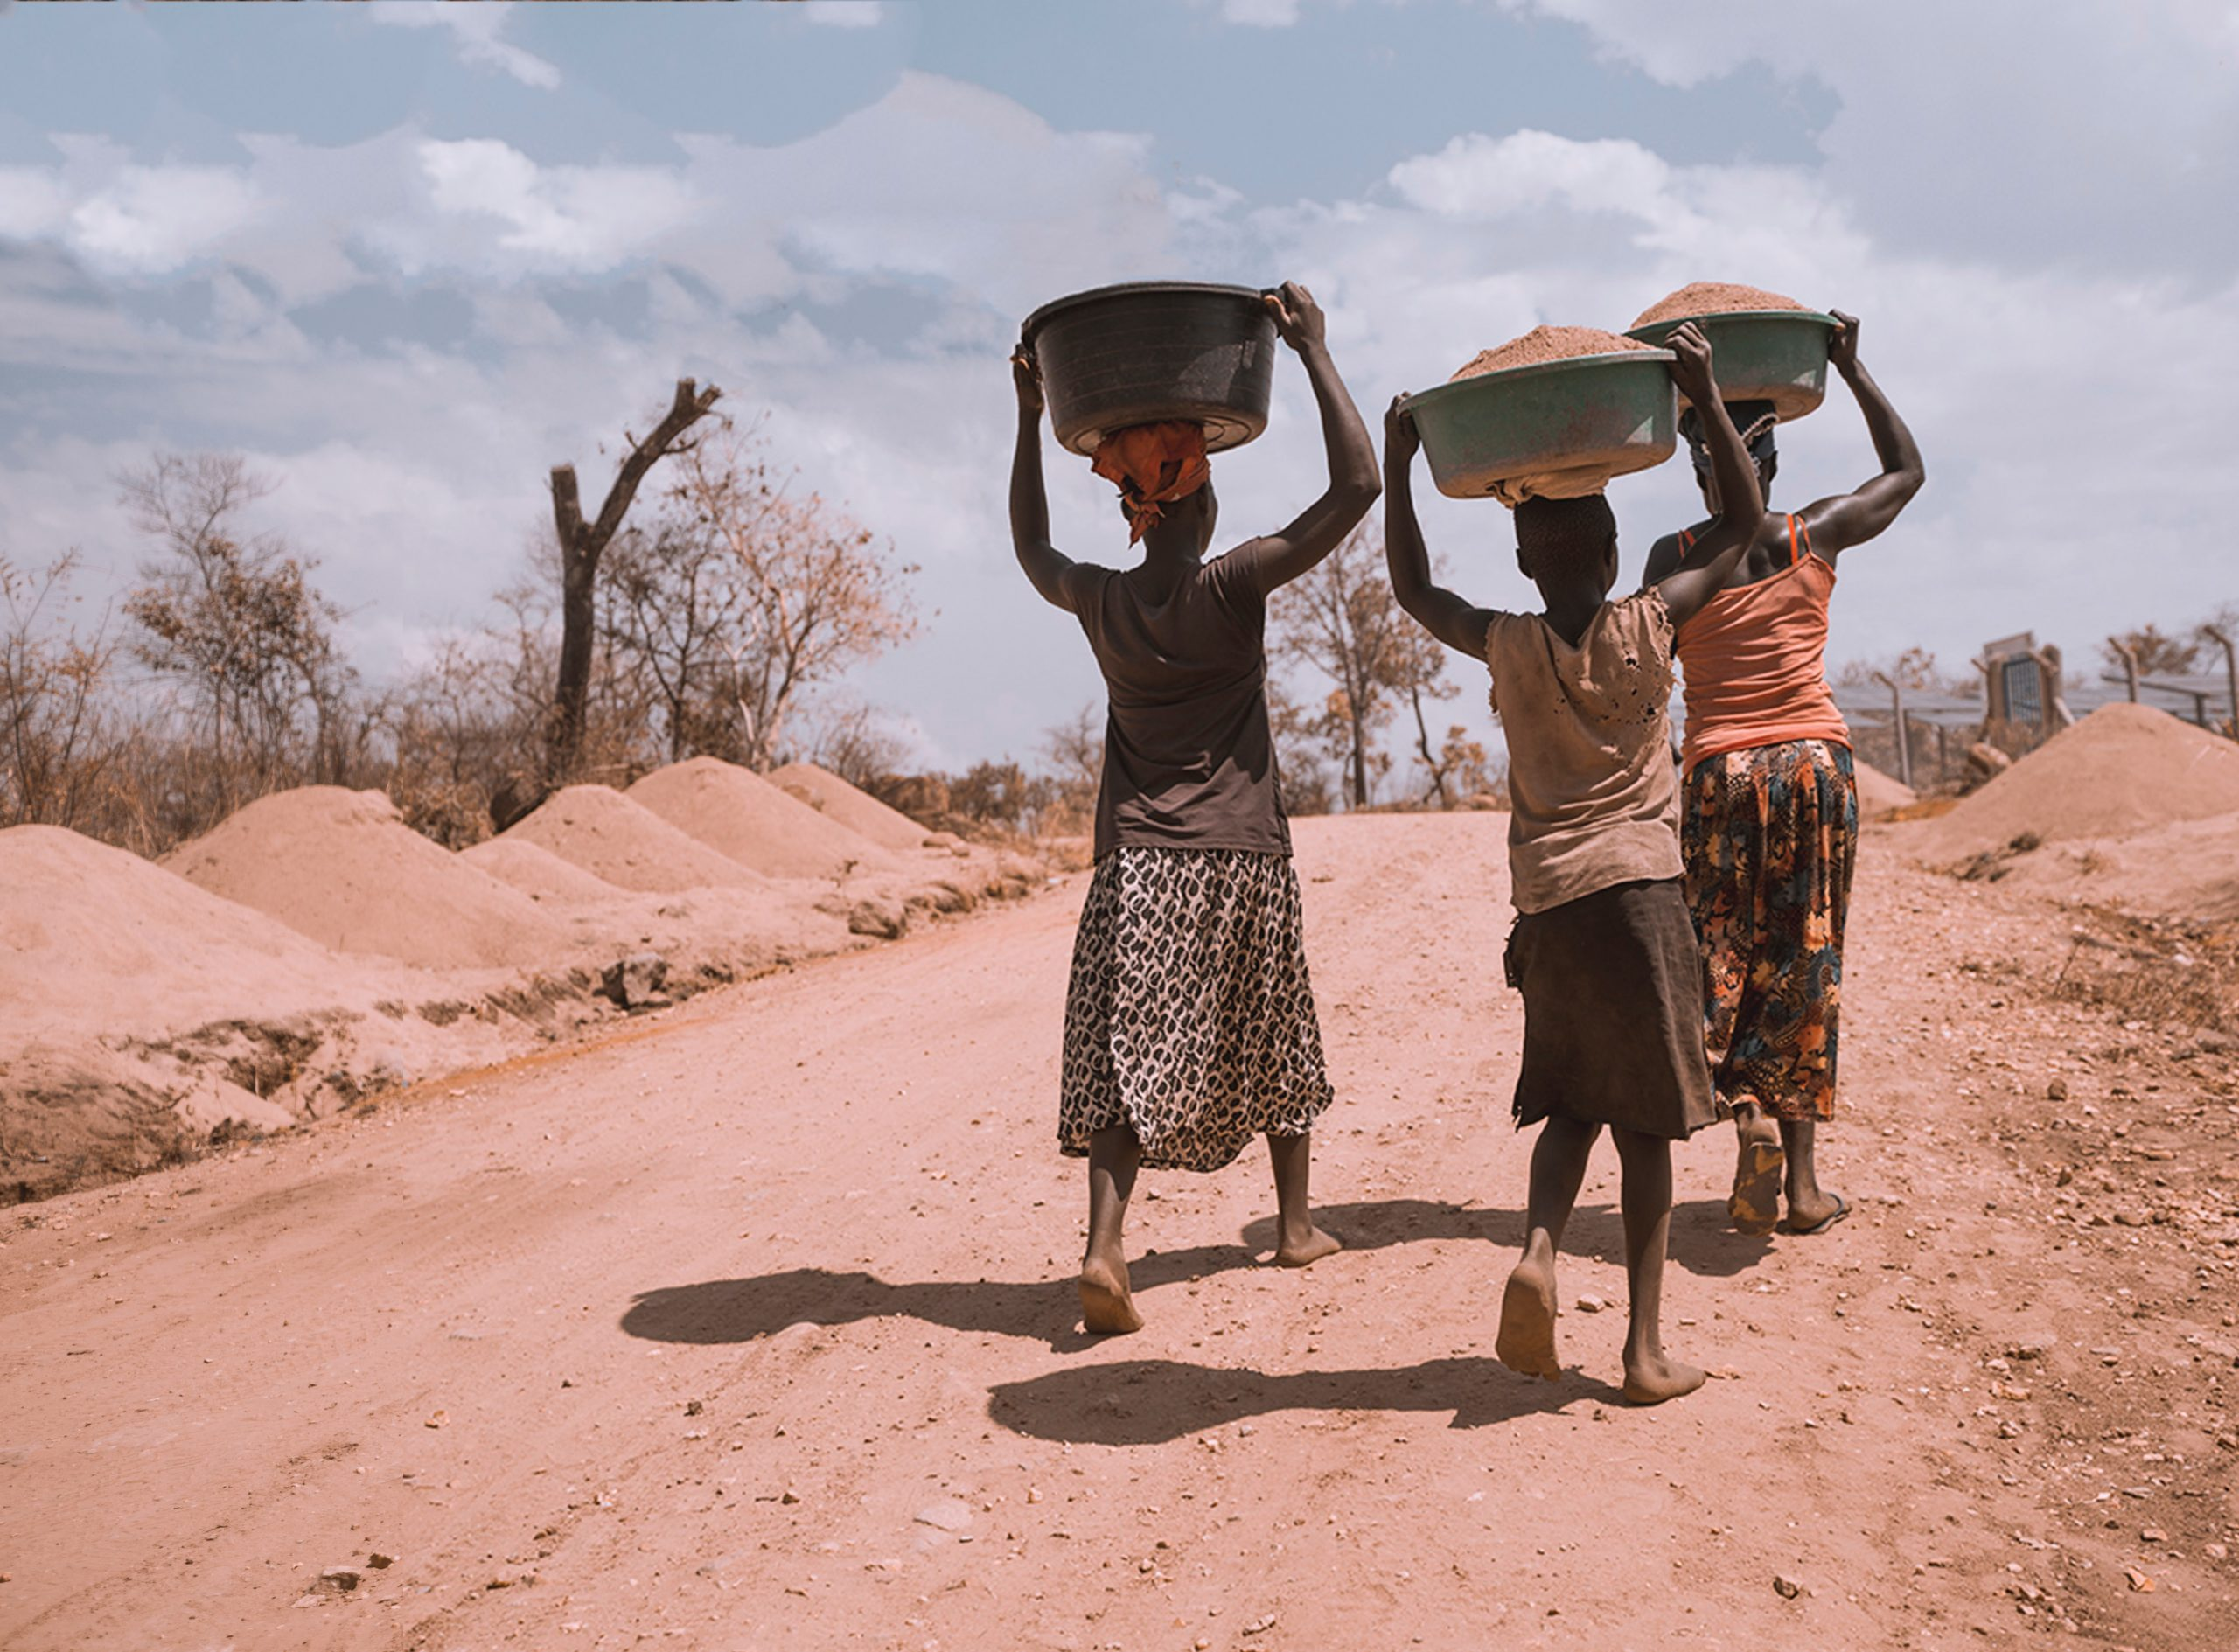 Three People in Africa carrying tubs